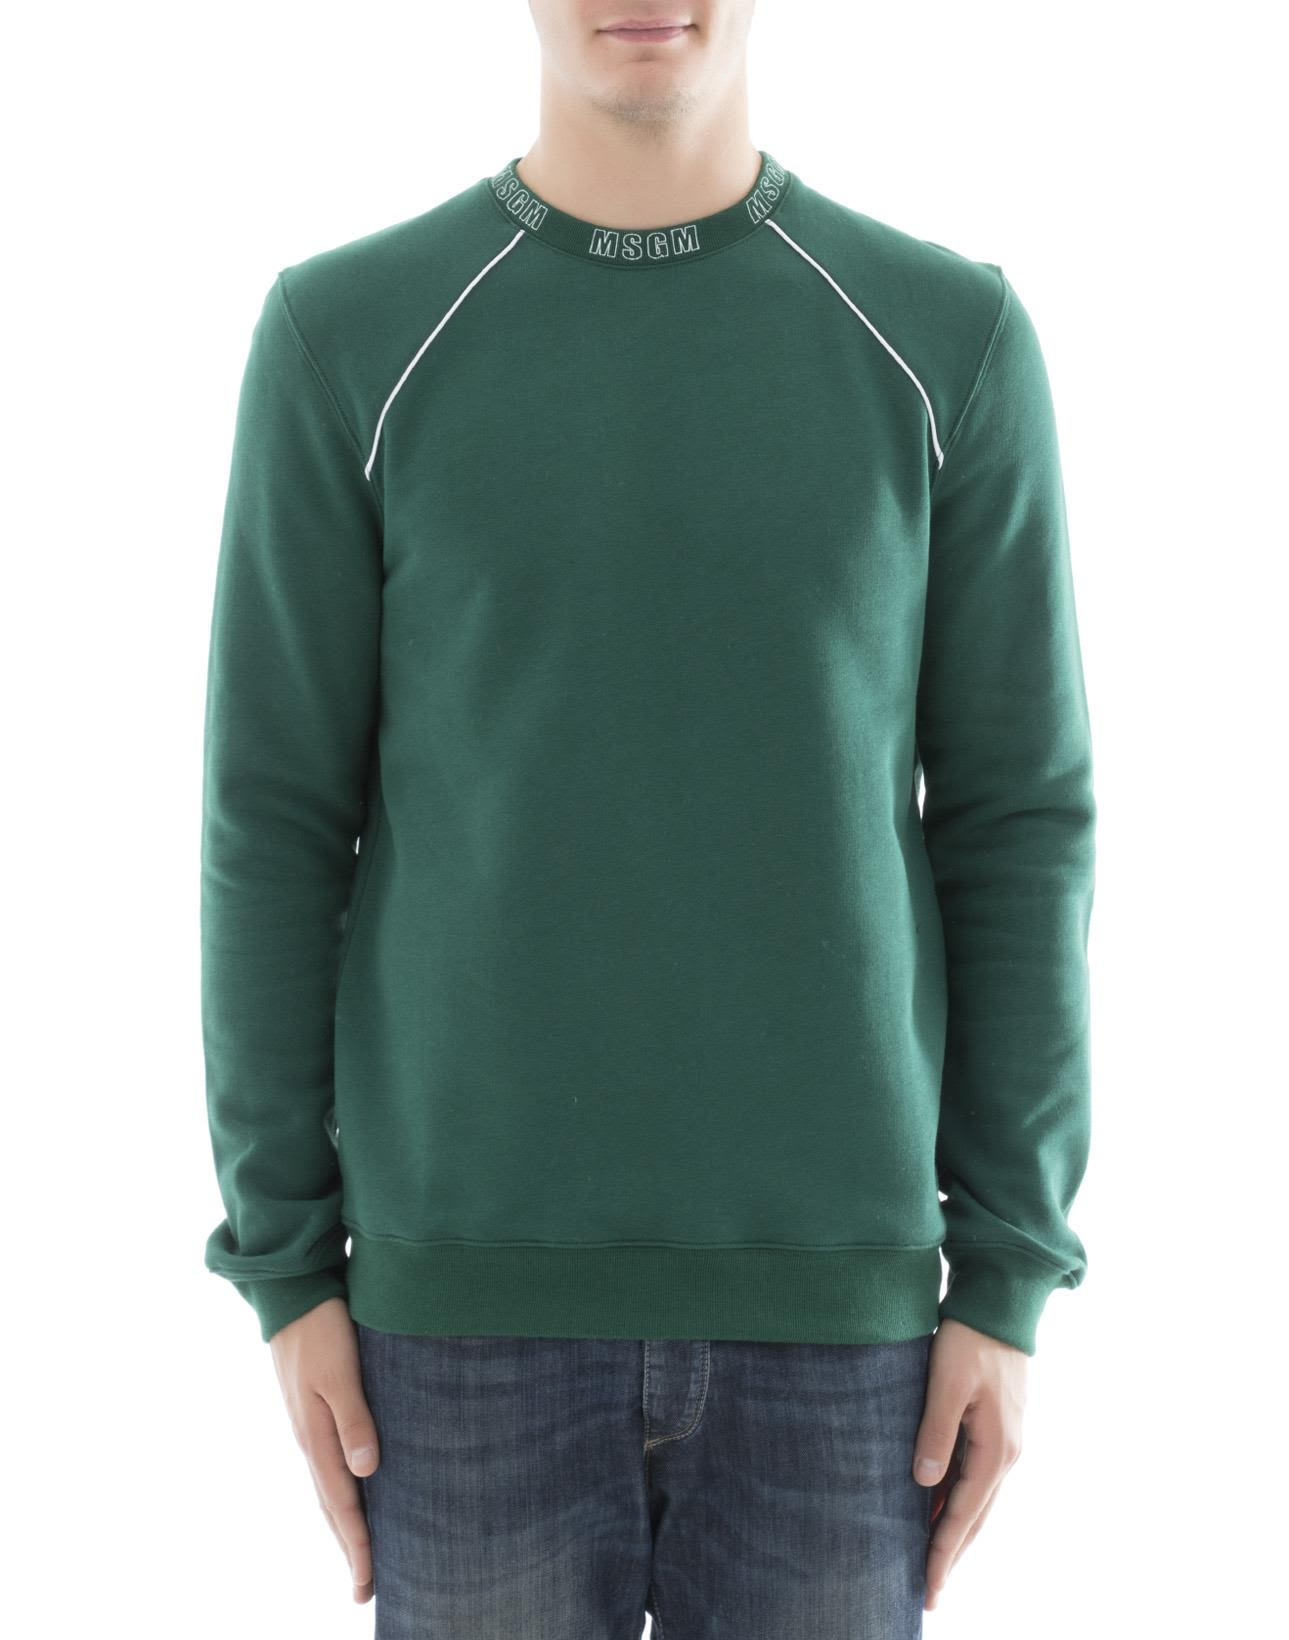 MSGM - Green Cotton Sweater - Green, Men's Sweaters | Italist